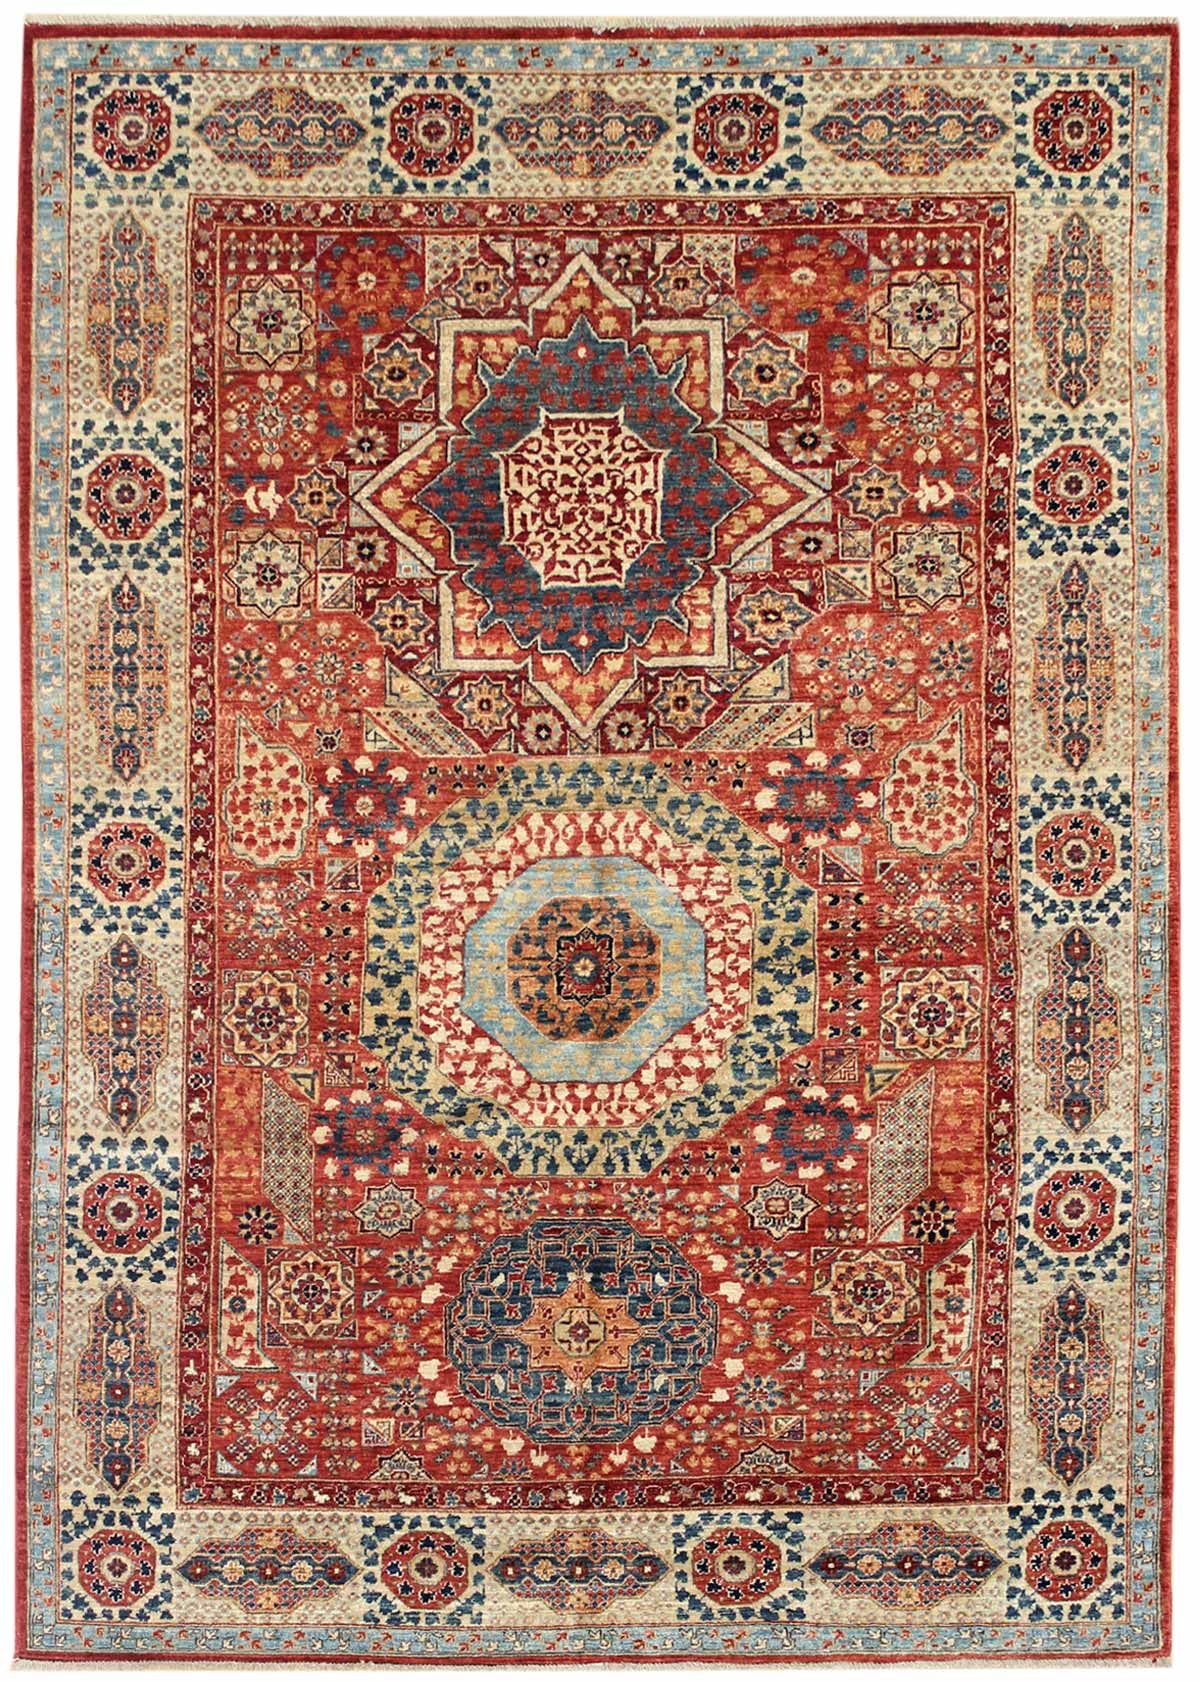 Geometric Oriental Rugs Gallery Mamluk Design Rug Hand Knotted In Afghanistan Size